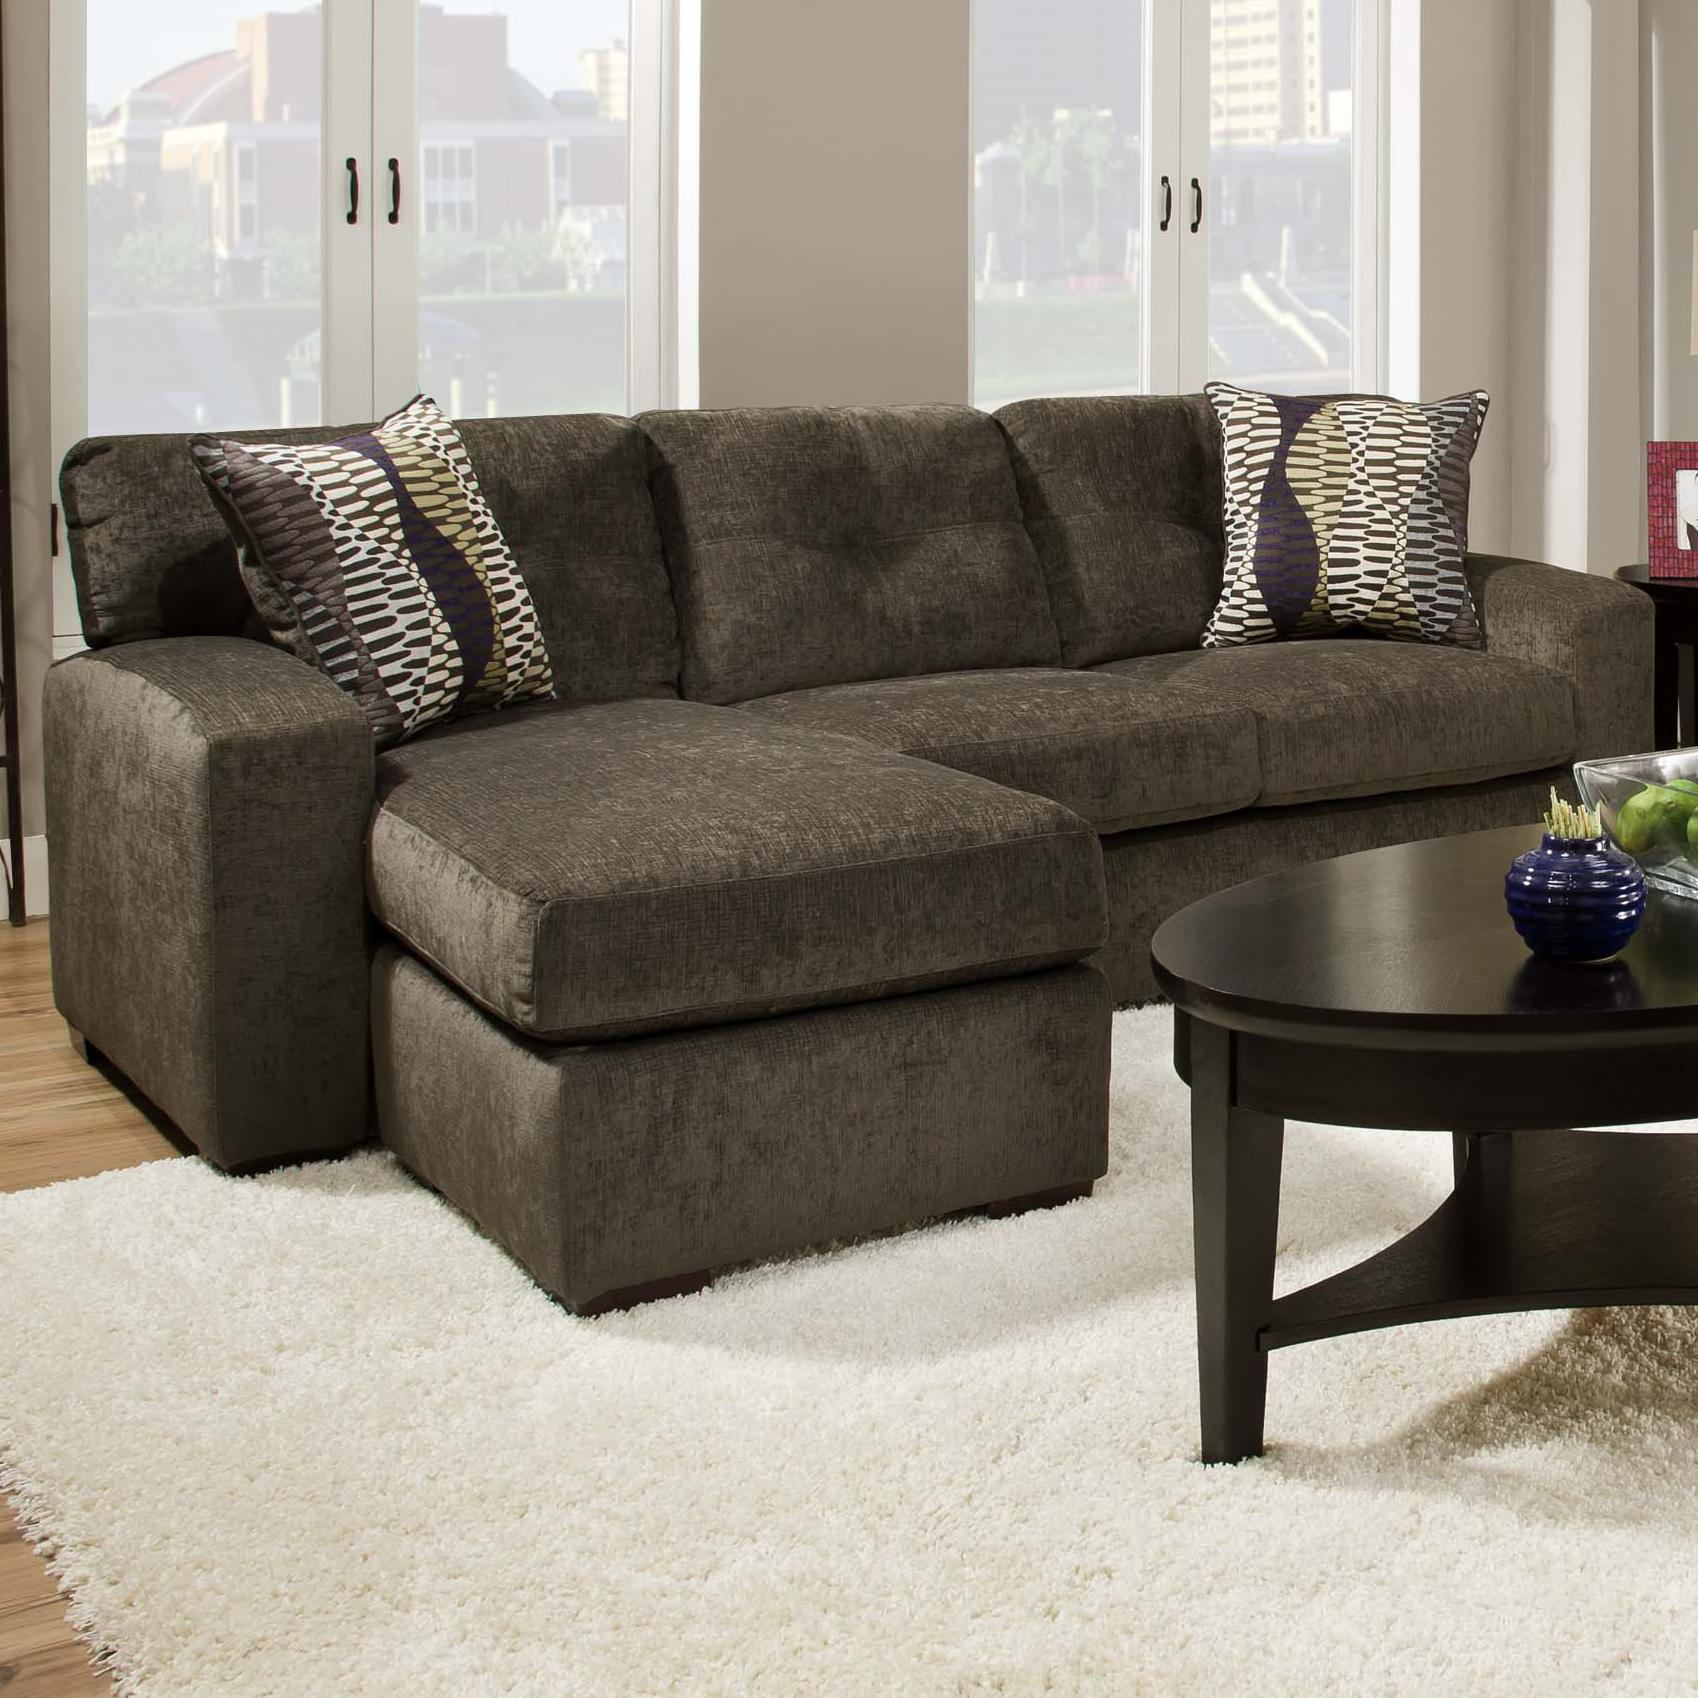 American Furniture 5100 Group Sofa Chaise Ottoman - Item Number: 5107 3430